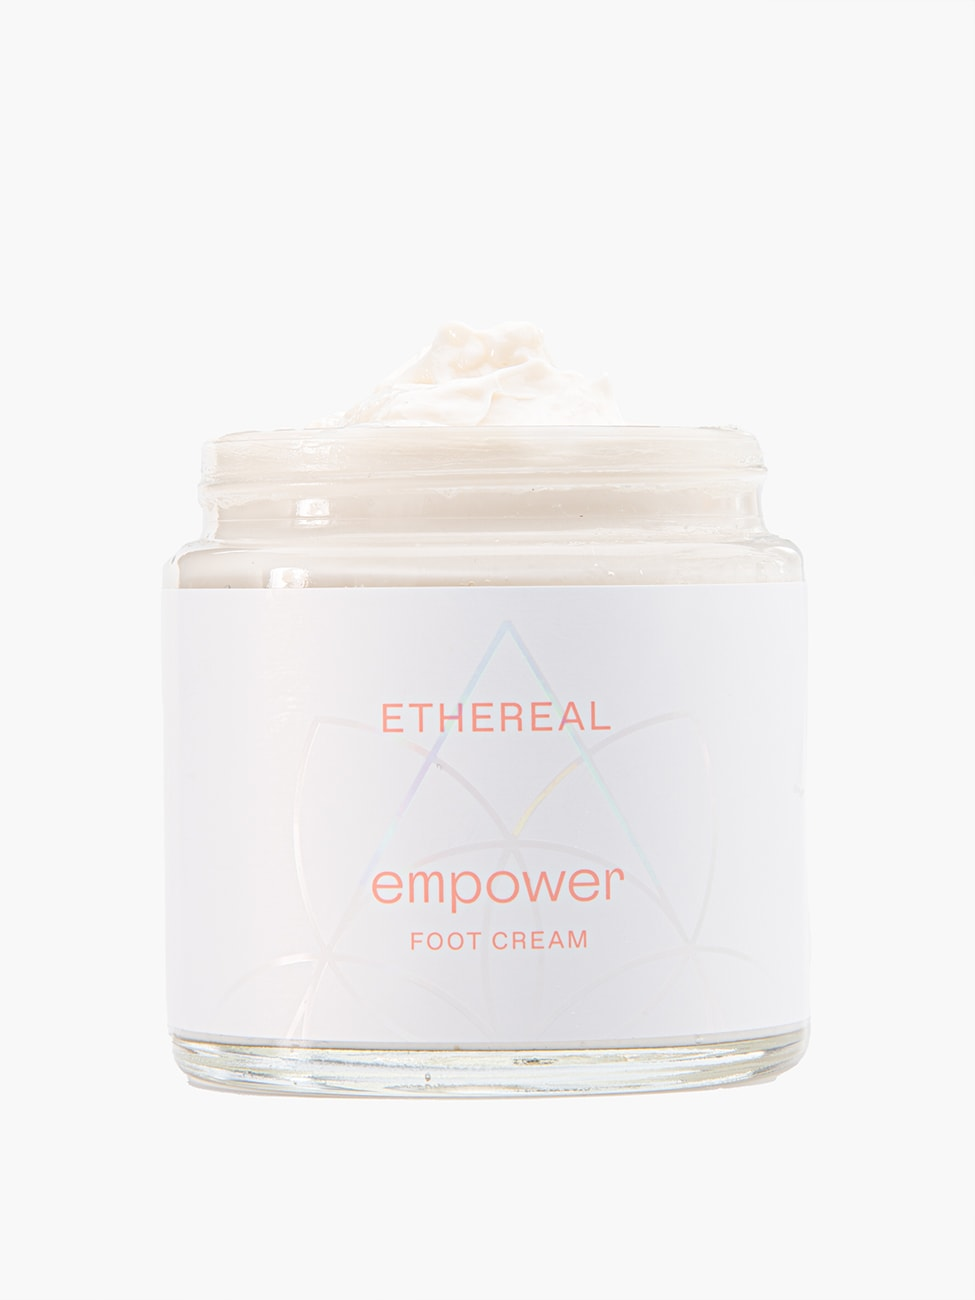 Empower_Cream_Texture_Ethereal_Dermocosmetics_Skincare_Handmade_Greek_Products